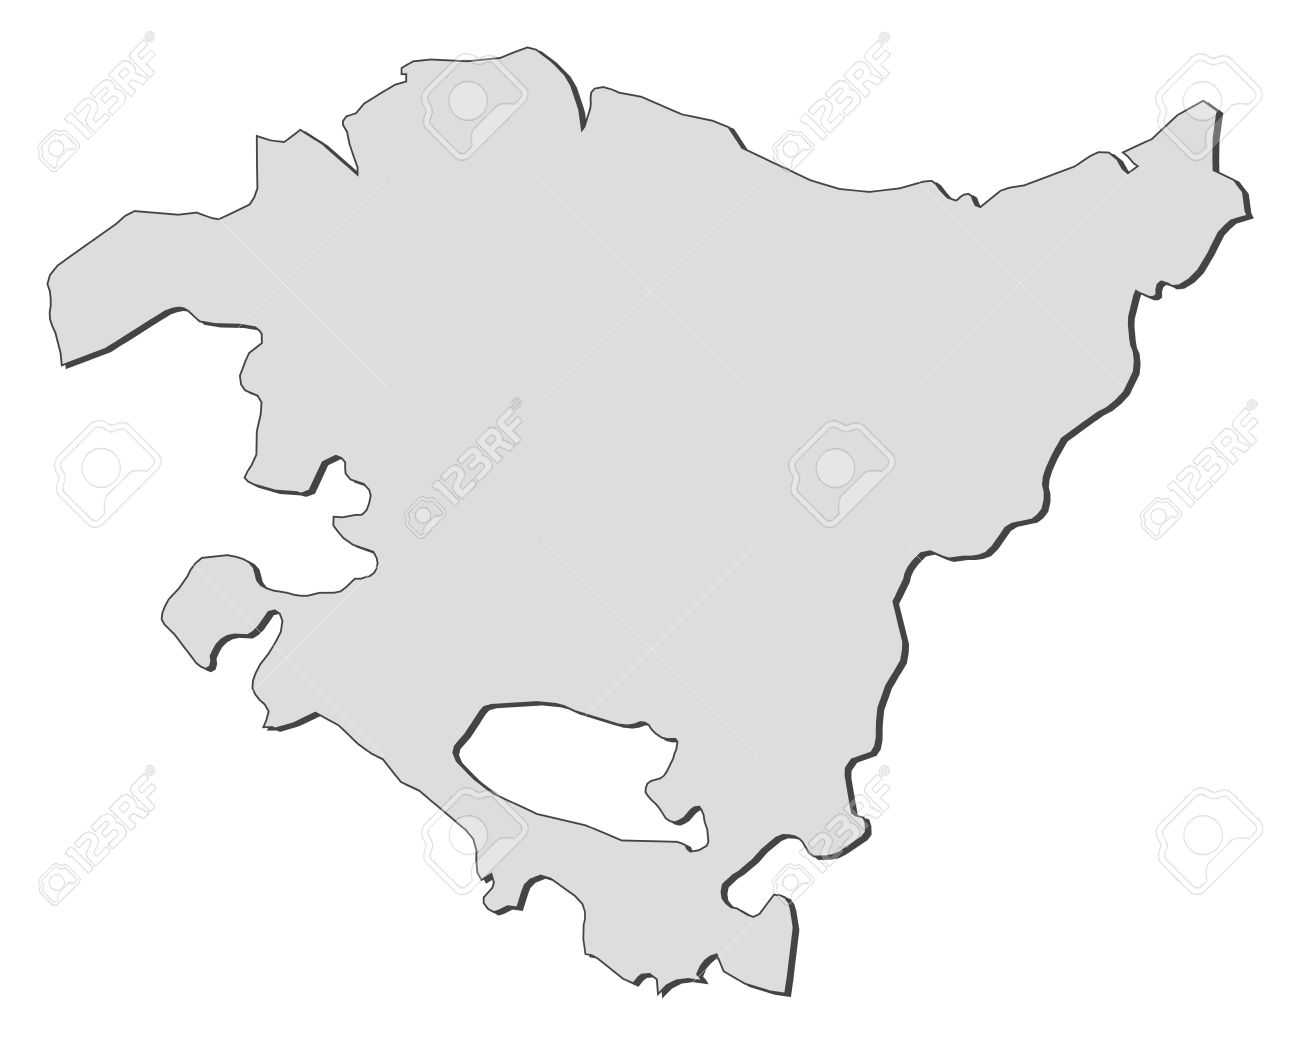 Map Of Basque Country A Region Of Spain Royalty Free Cliparts